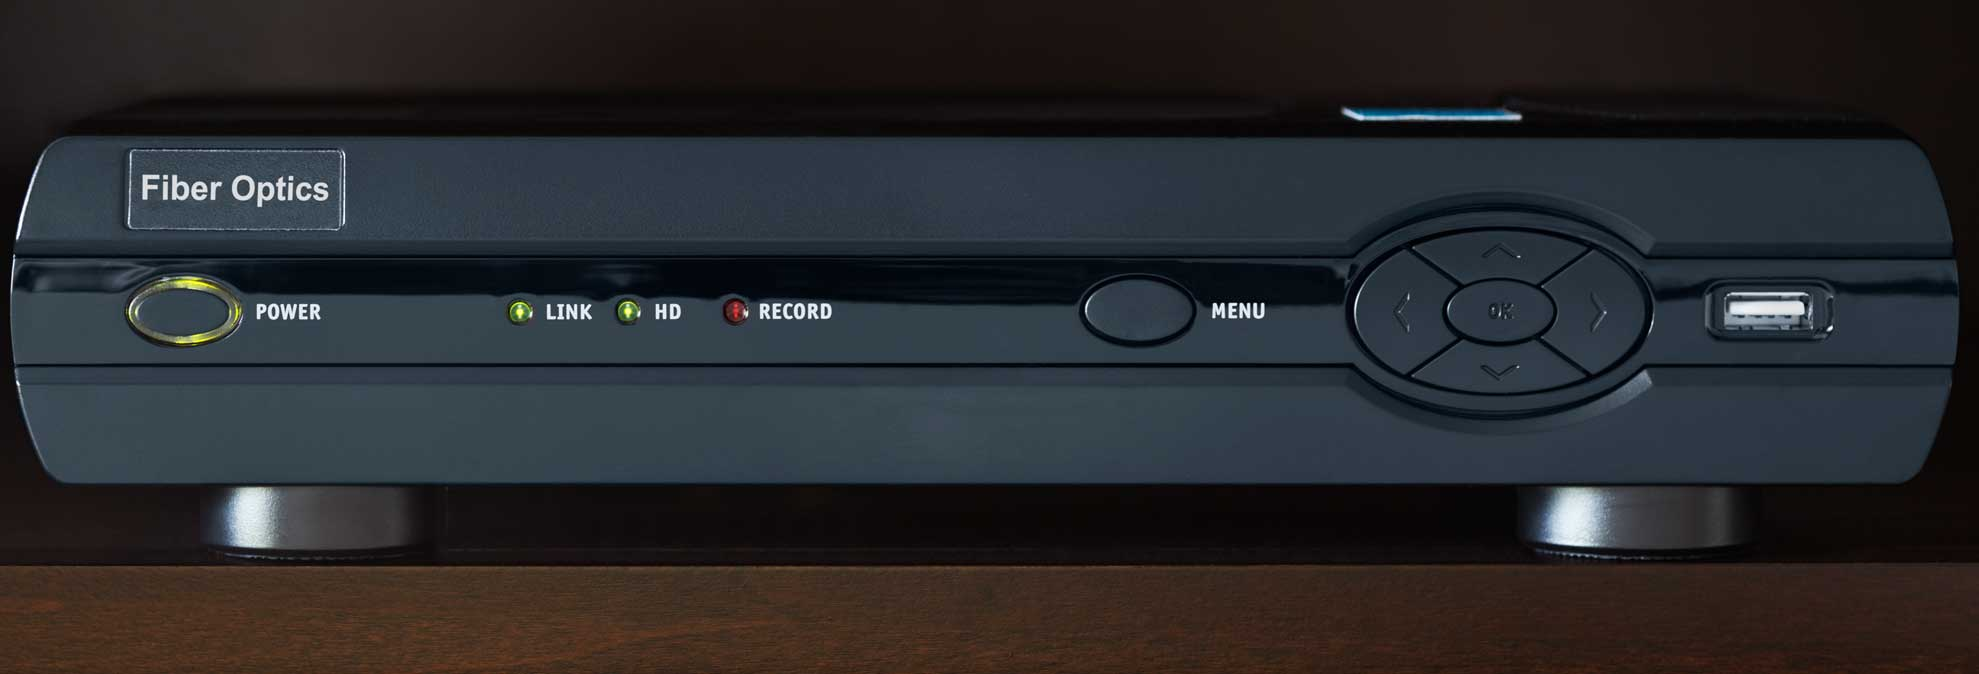 FCC Urged to Approve New Cable-Box Rules - Consumer Reports